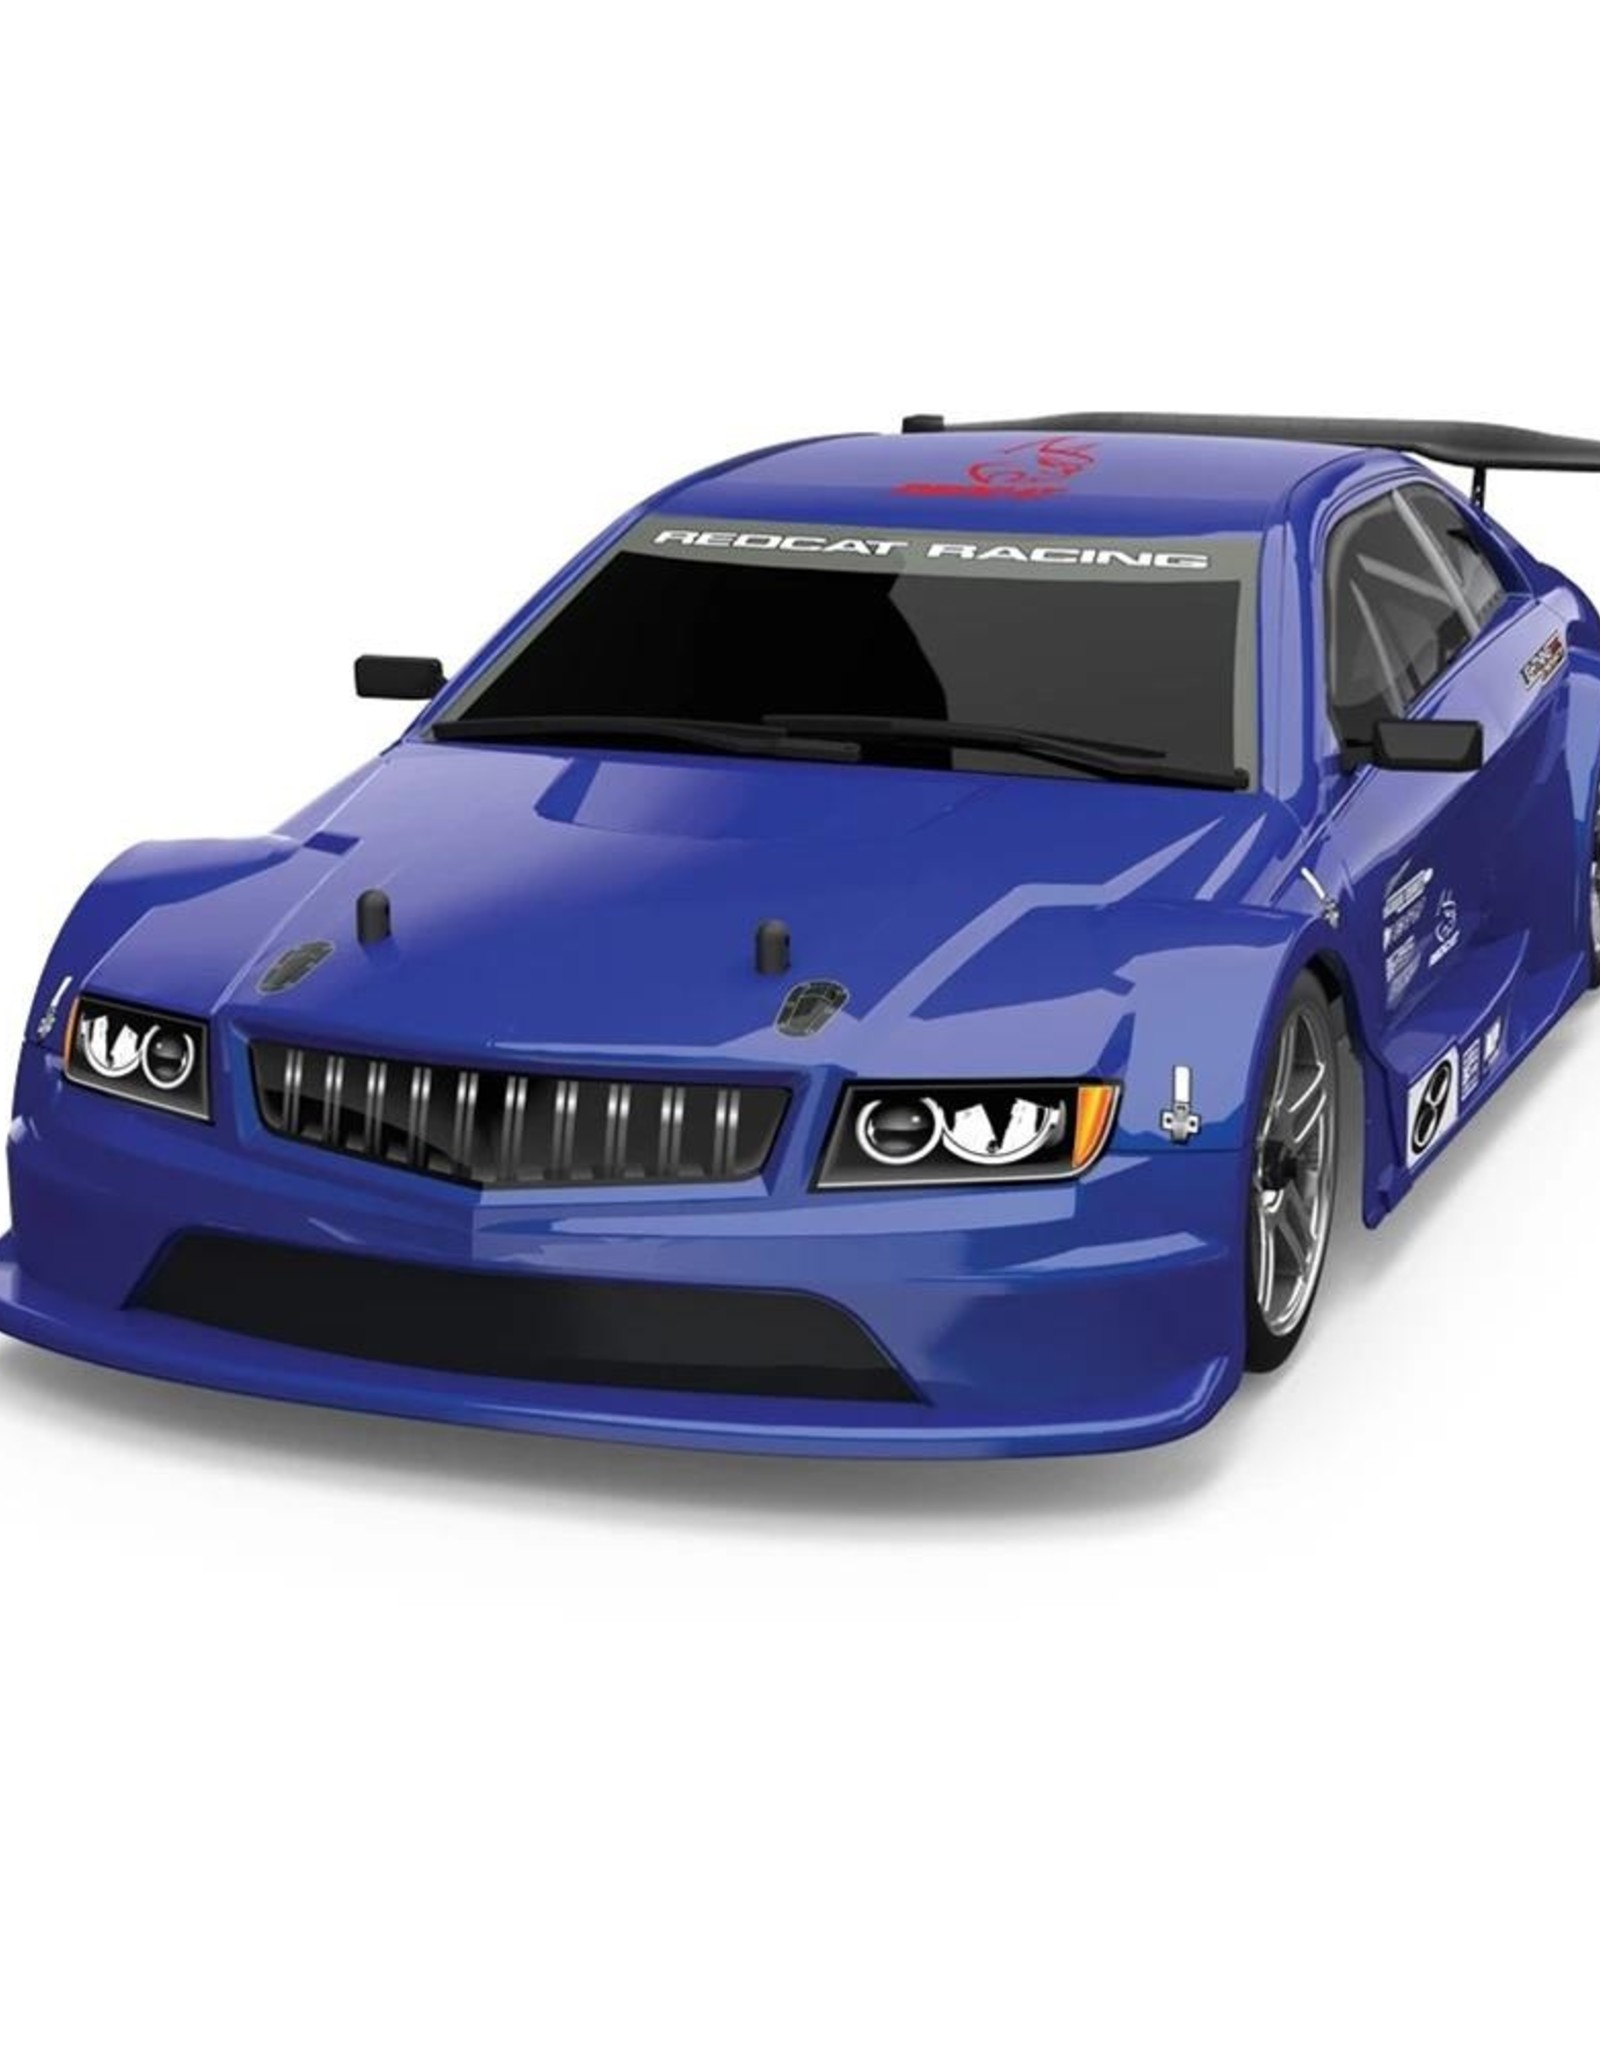 Redcat Racing 1/10 Lightning EPX Drift 4WD RTR Blue